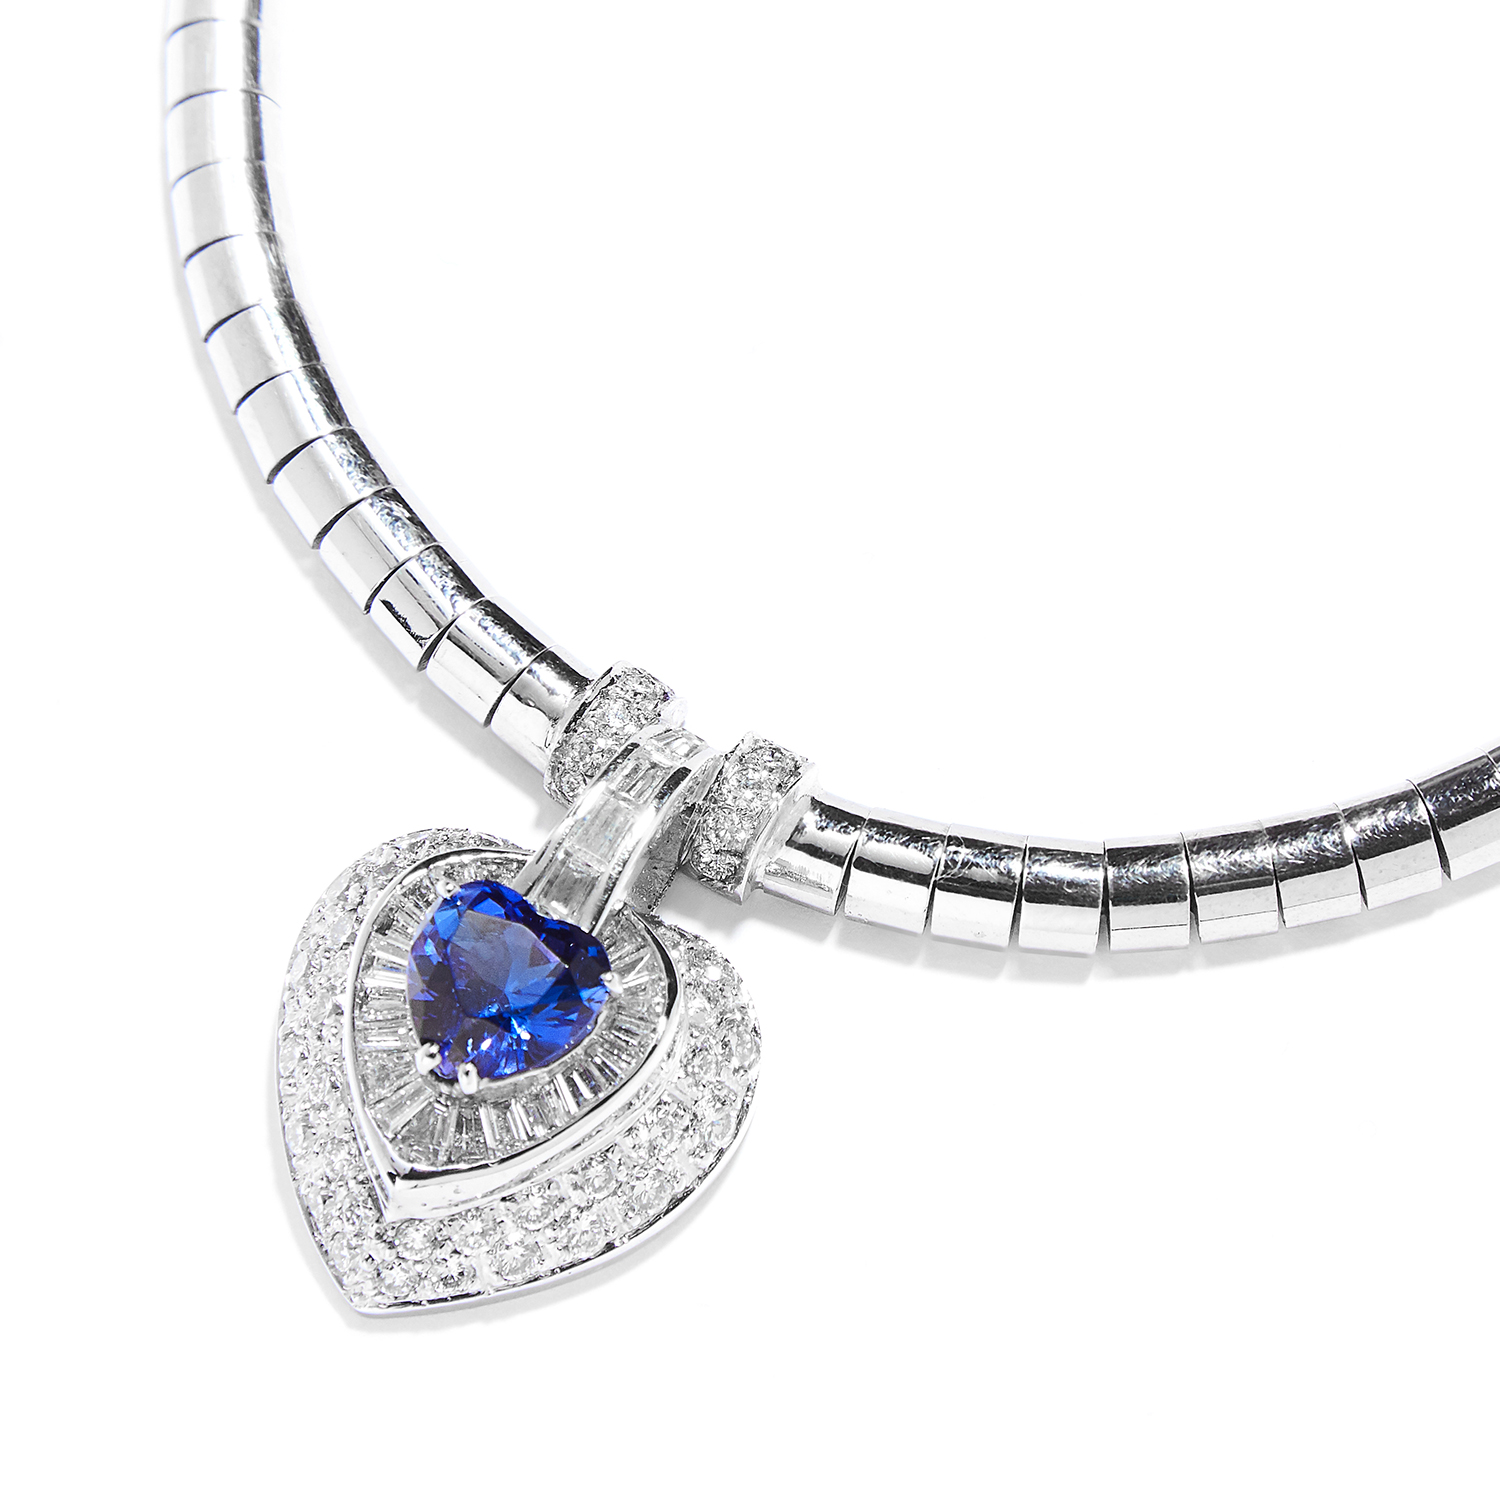 TANZANITE AND DIAMOND PENDANT NECKLACE in 18ct white gold, the fancy link chain suspending a heart